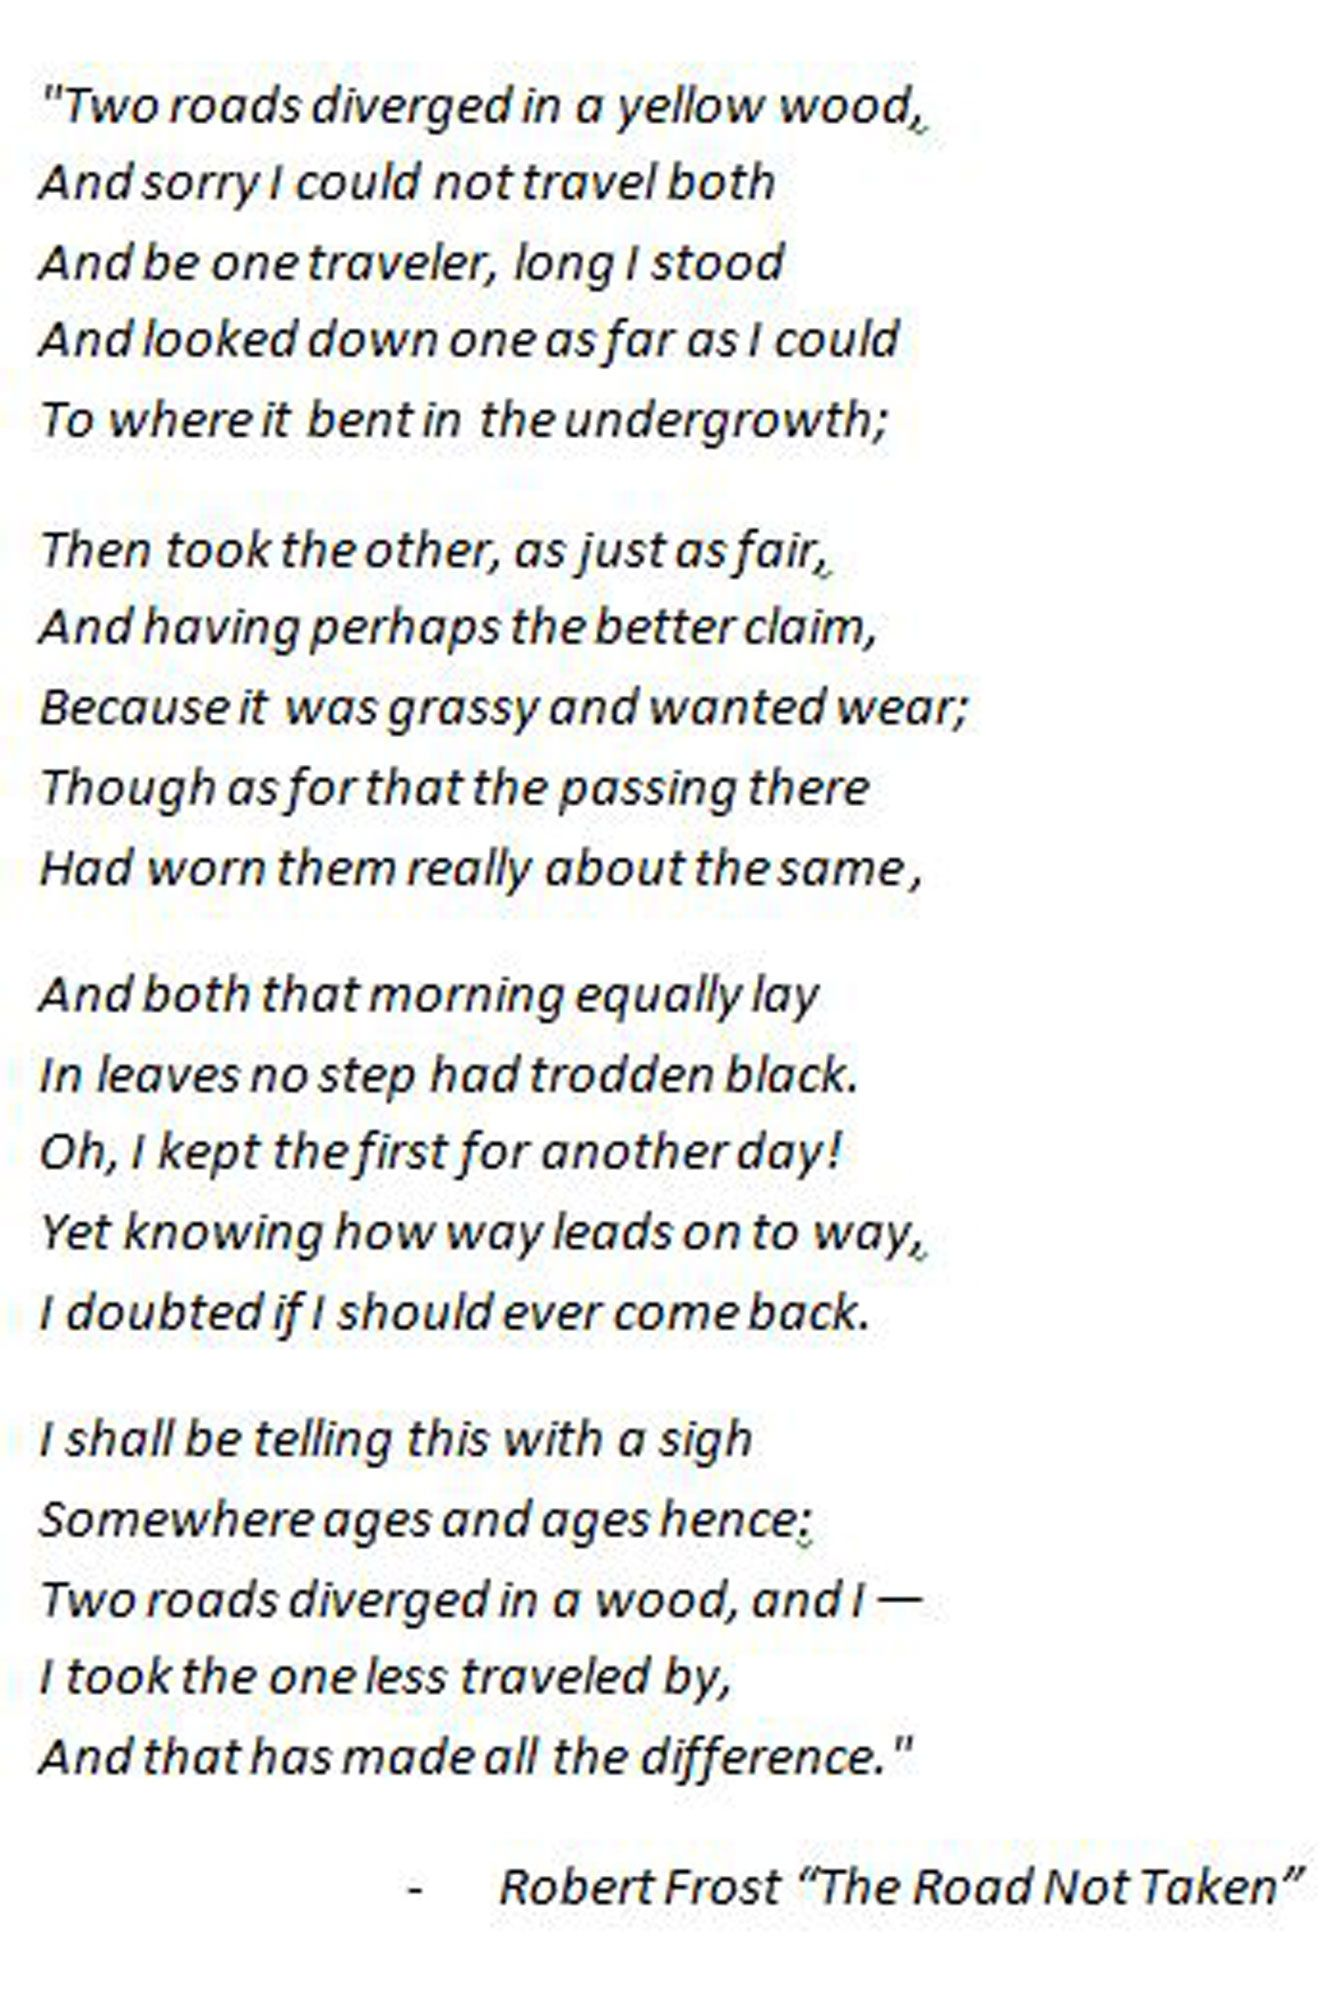 The Famou Robert Frost Poem We Ve Read Wrong Forever Crossing Bar Alfred Lord Tennyson Paraphrase Analysi Meaning